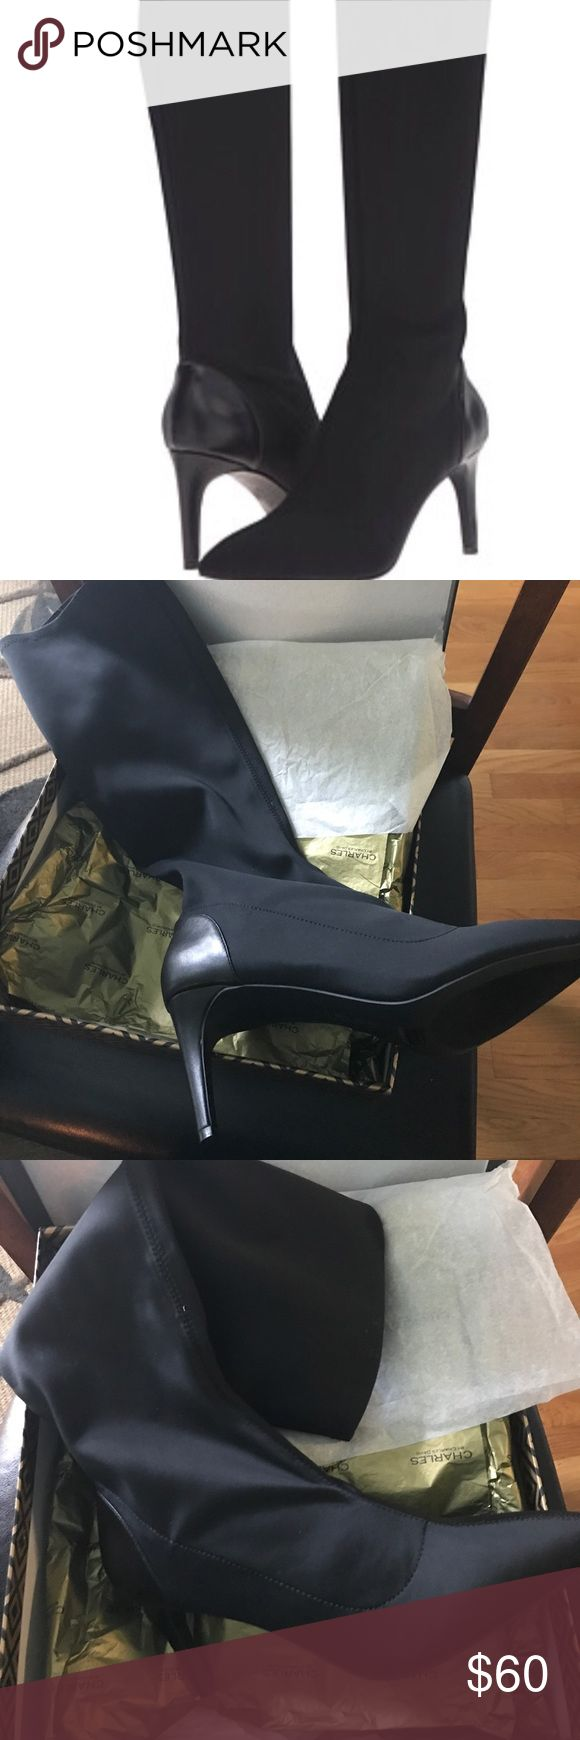 NIB Charles by Charles David Super sKnee high Superstar Stretch Charles David 3 in heel. Black 10 M Charles David Shoes Heeled Boots